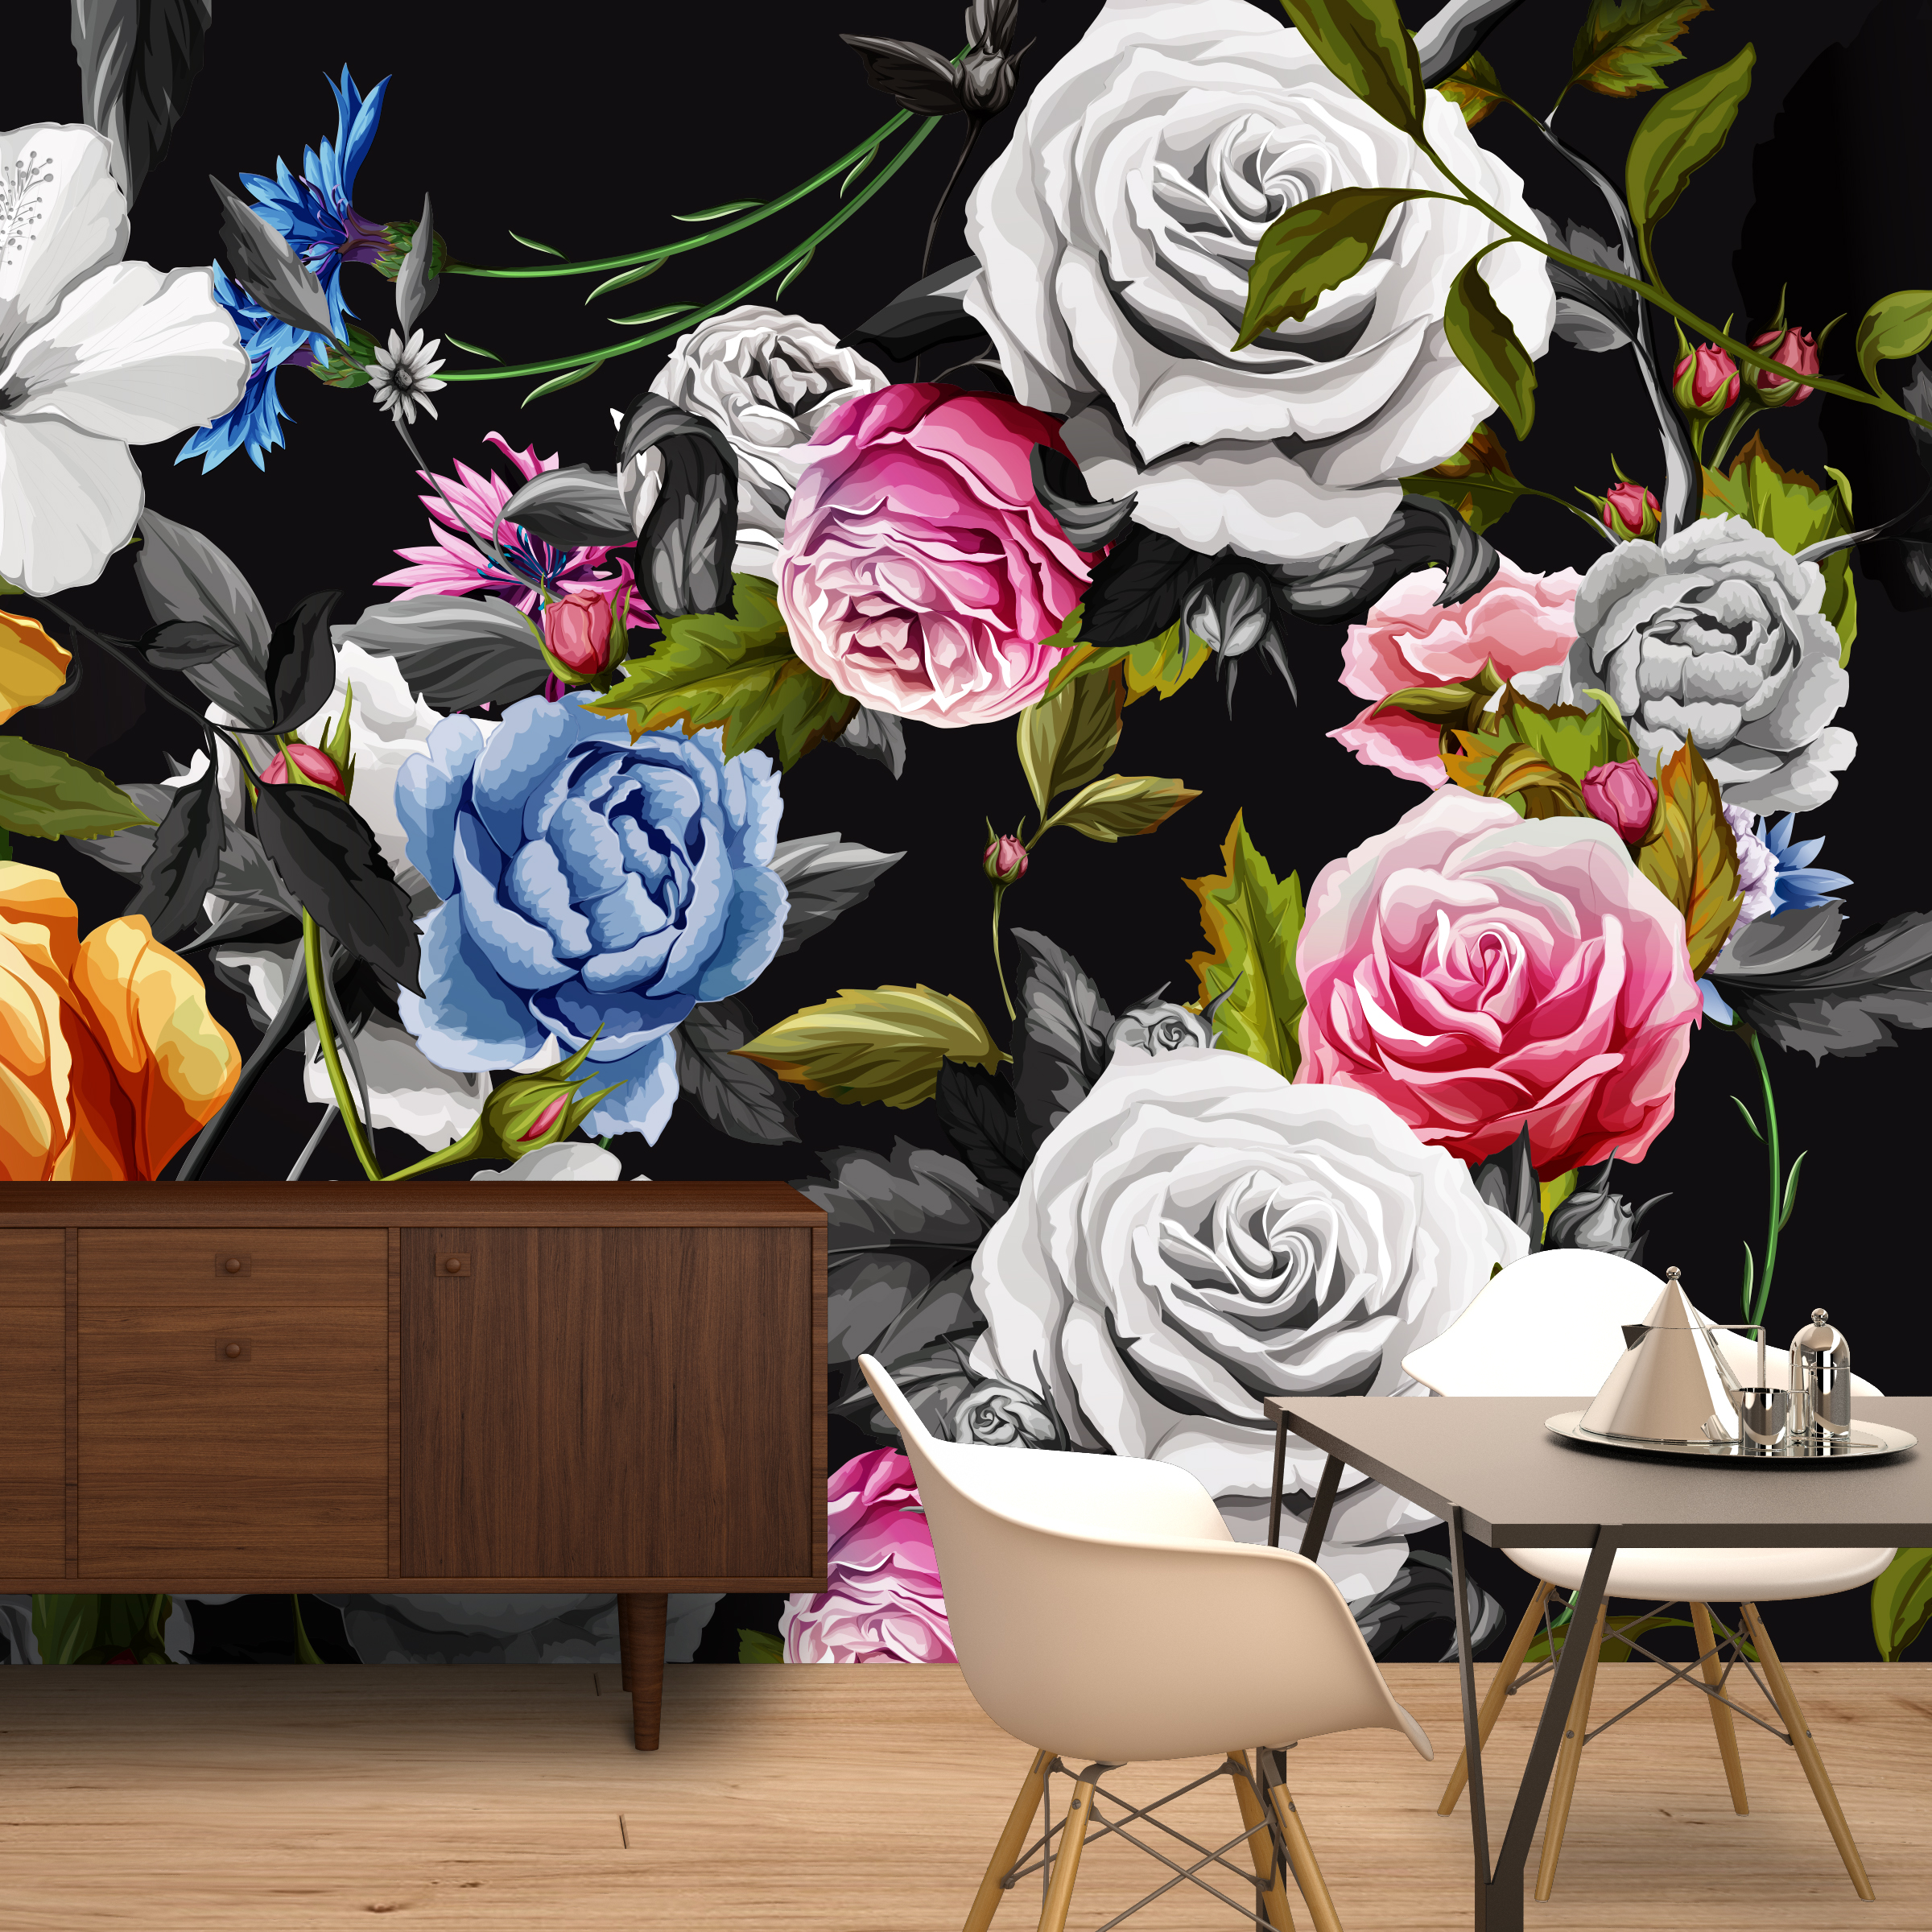 Big Black Floral Wall Mural Moonwallstickers Com